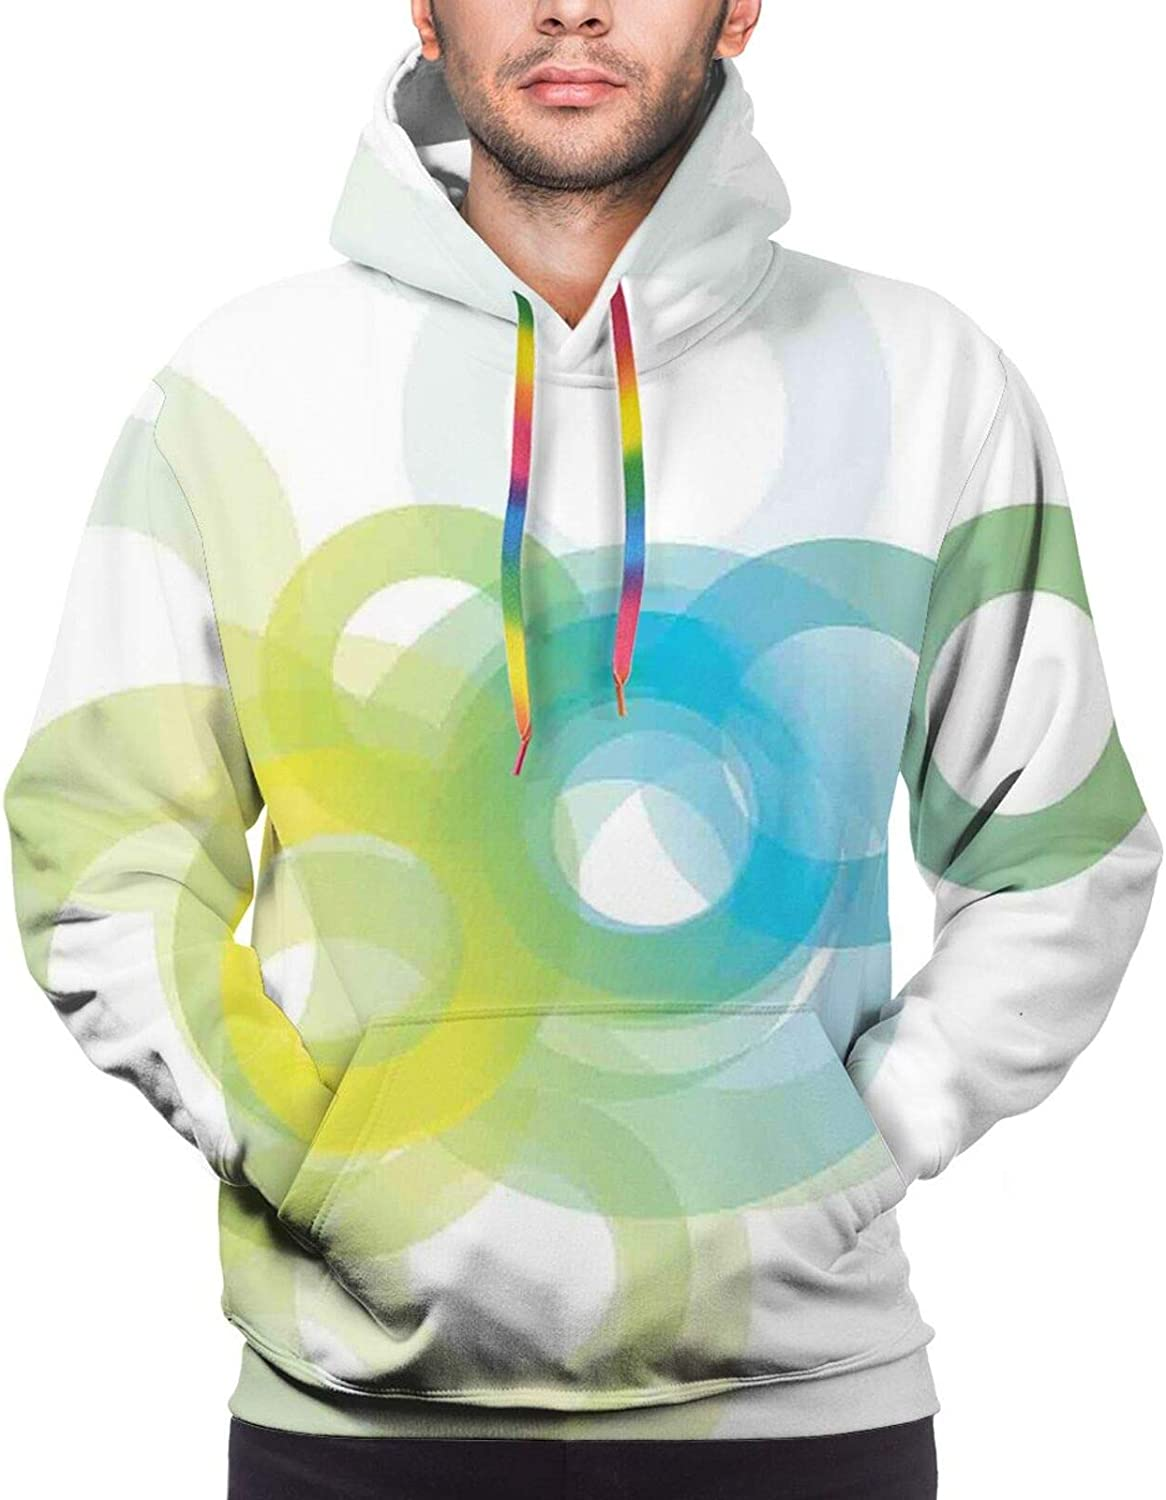 Men's Hoodies Sweatshirts,Modern Cool Decoration with Dots Like and Circled Design Artwork